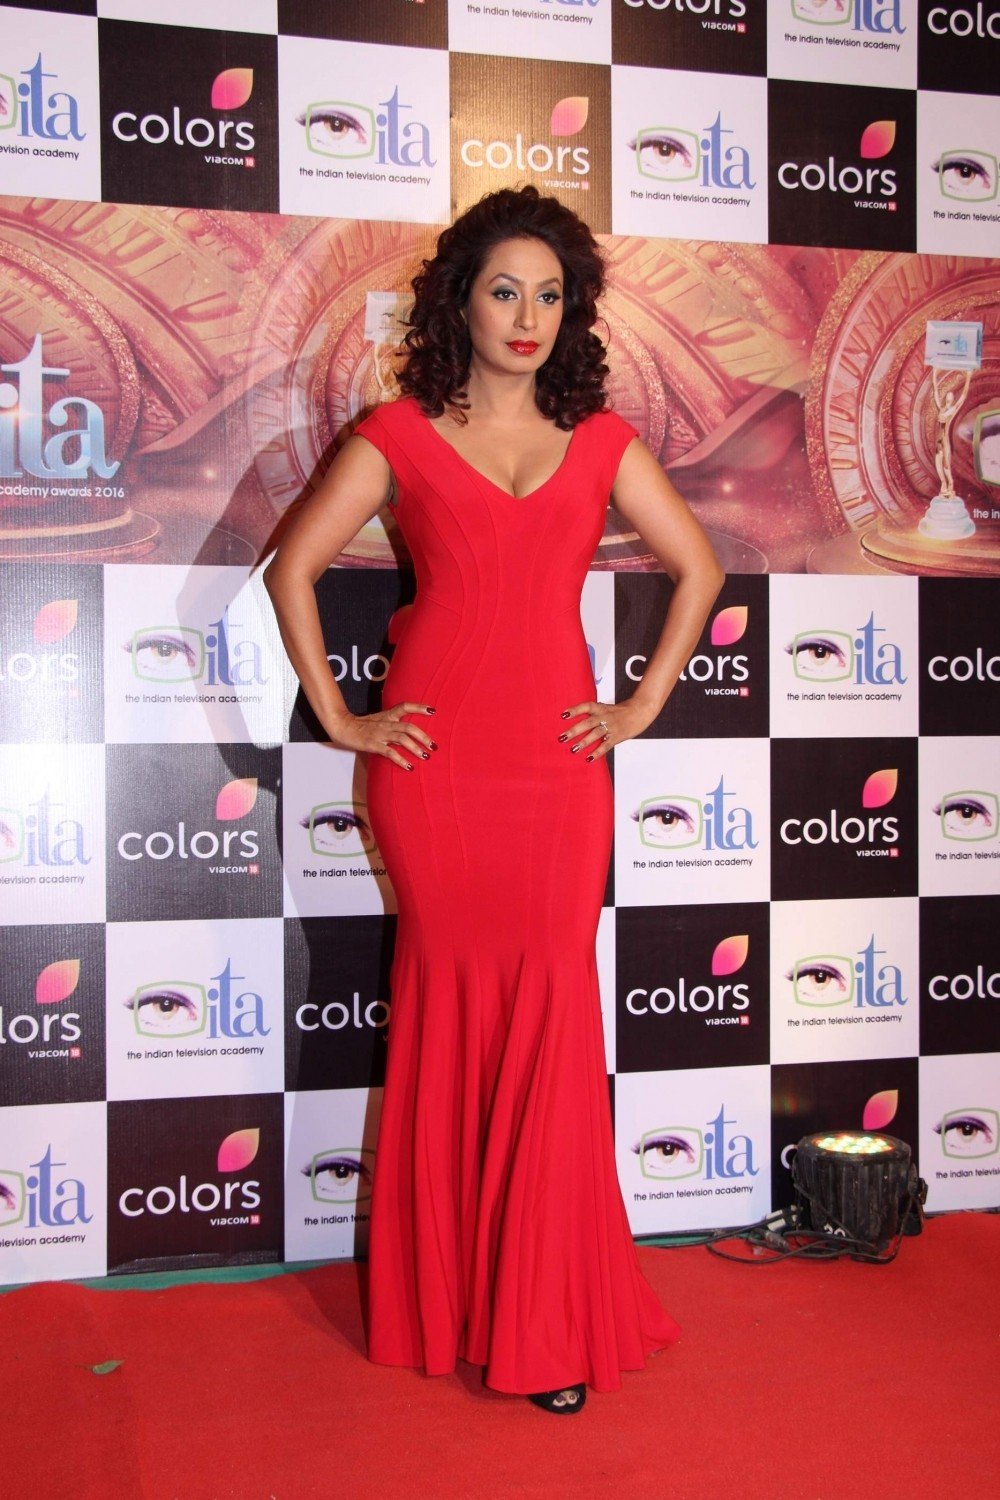 16th Indian Television Academy Awards 2016,16th Indian Television Academy Awards,Indian Television Academy Awards